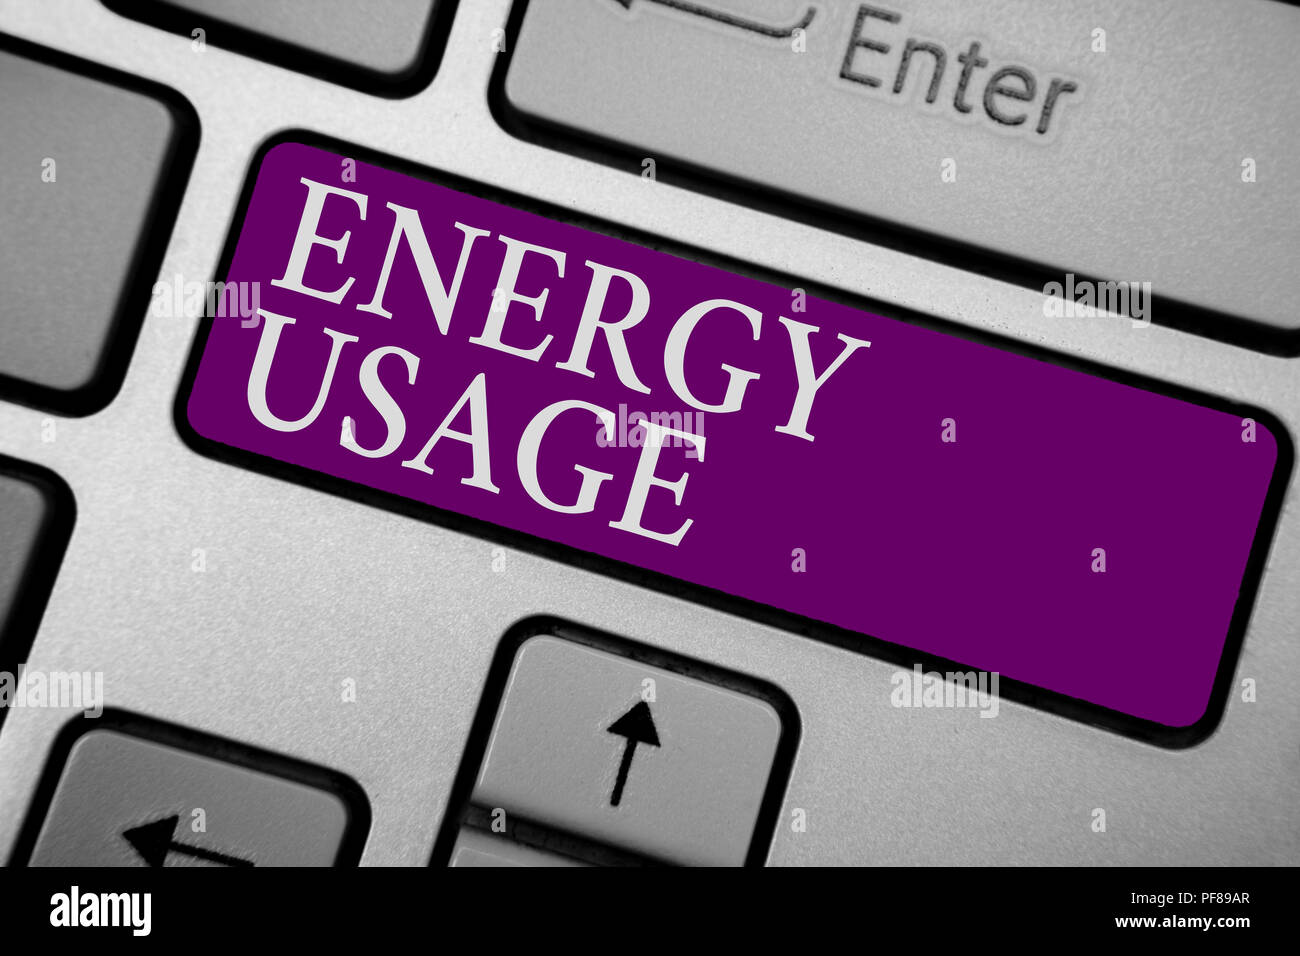 Writing note showing Energy Usage. Business photo showcasing Amount of energy consumed or used in a process or system Keyboard purple key Intention co - Stock Image